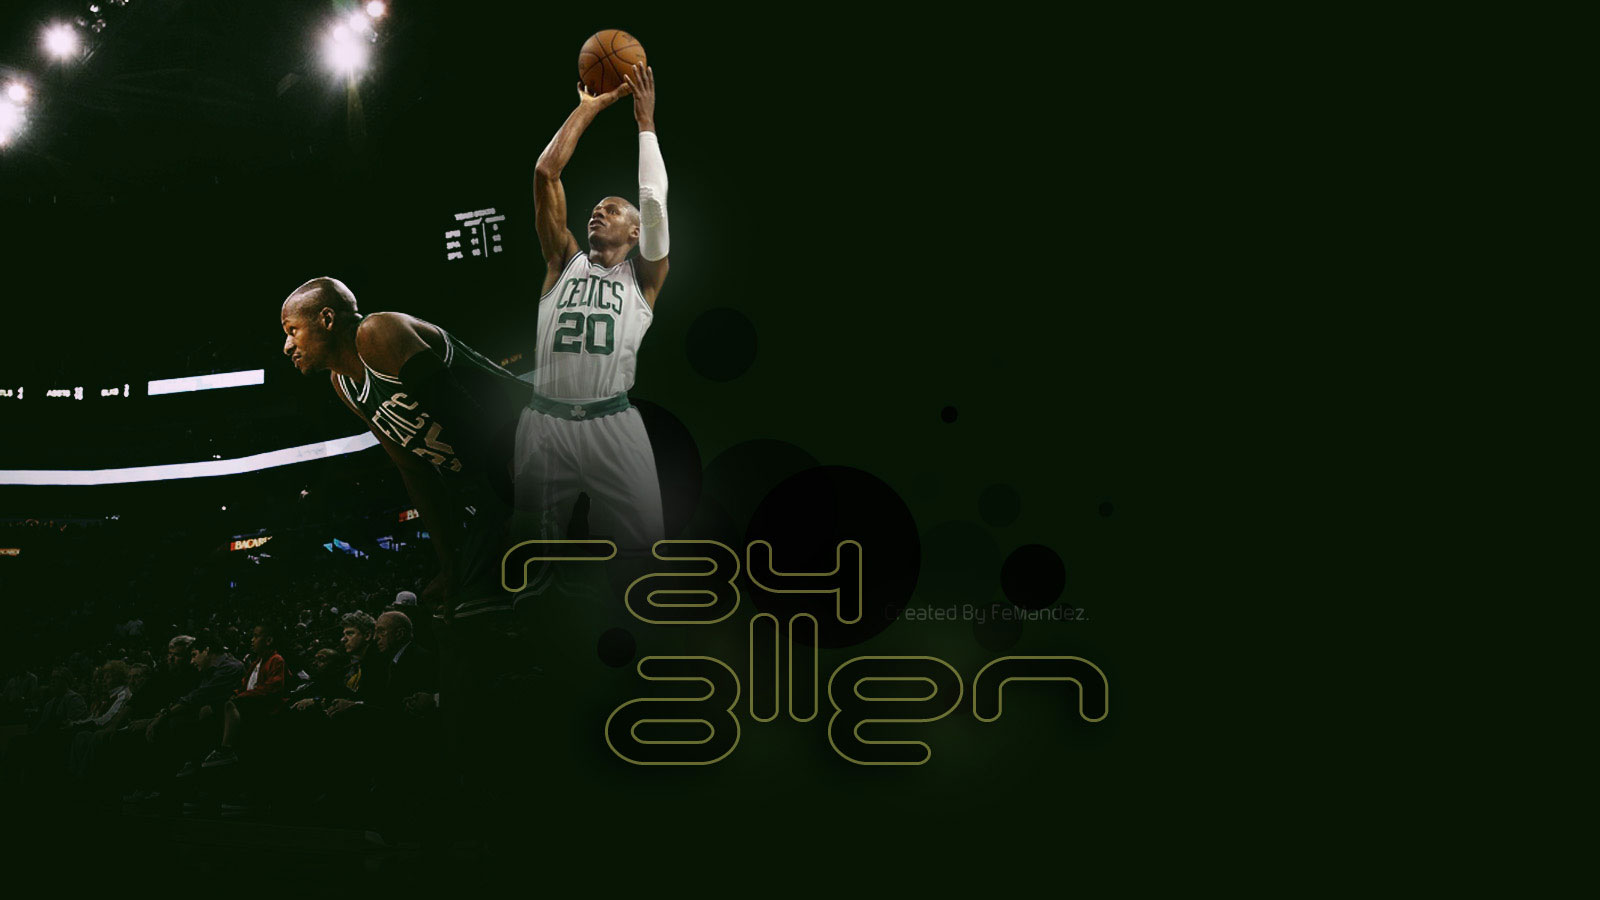 ray allen wallpapers | basketball wallpapers at basketwallpapers